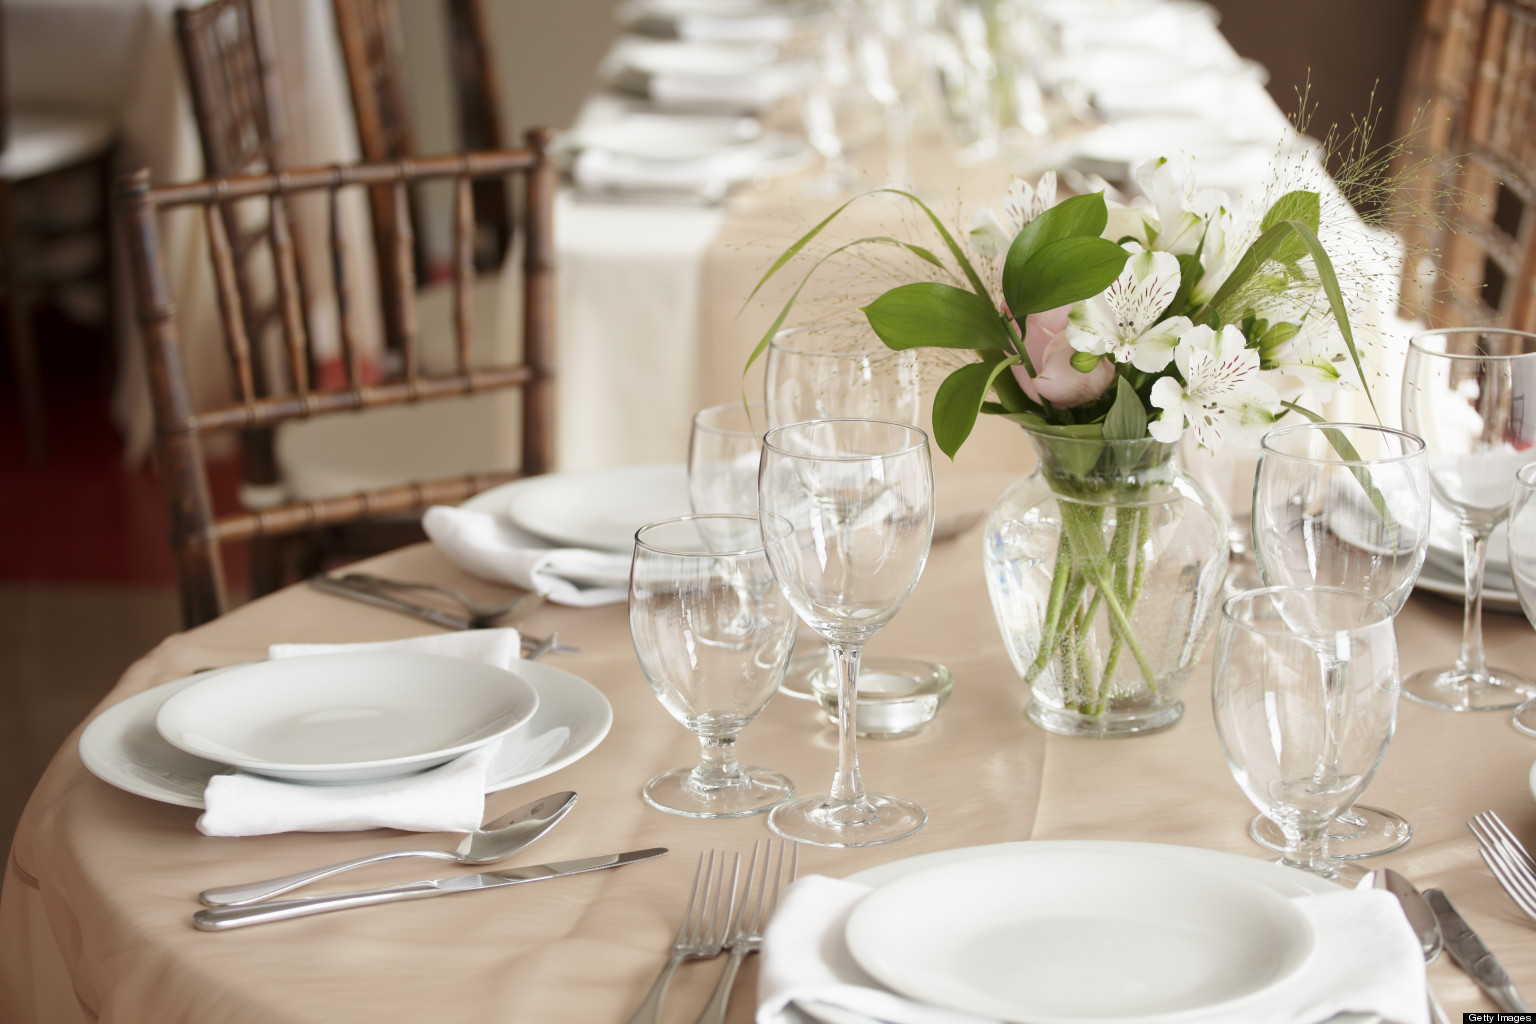 & Dining Etiquette: Setting a Welcome Table | HuffPost